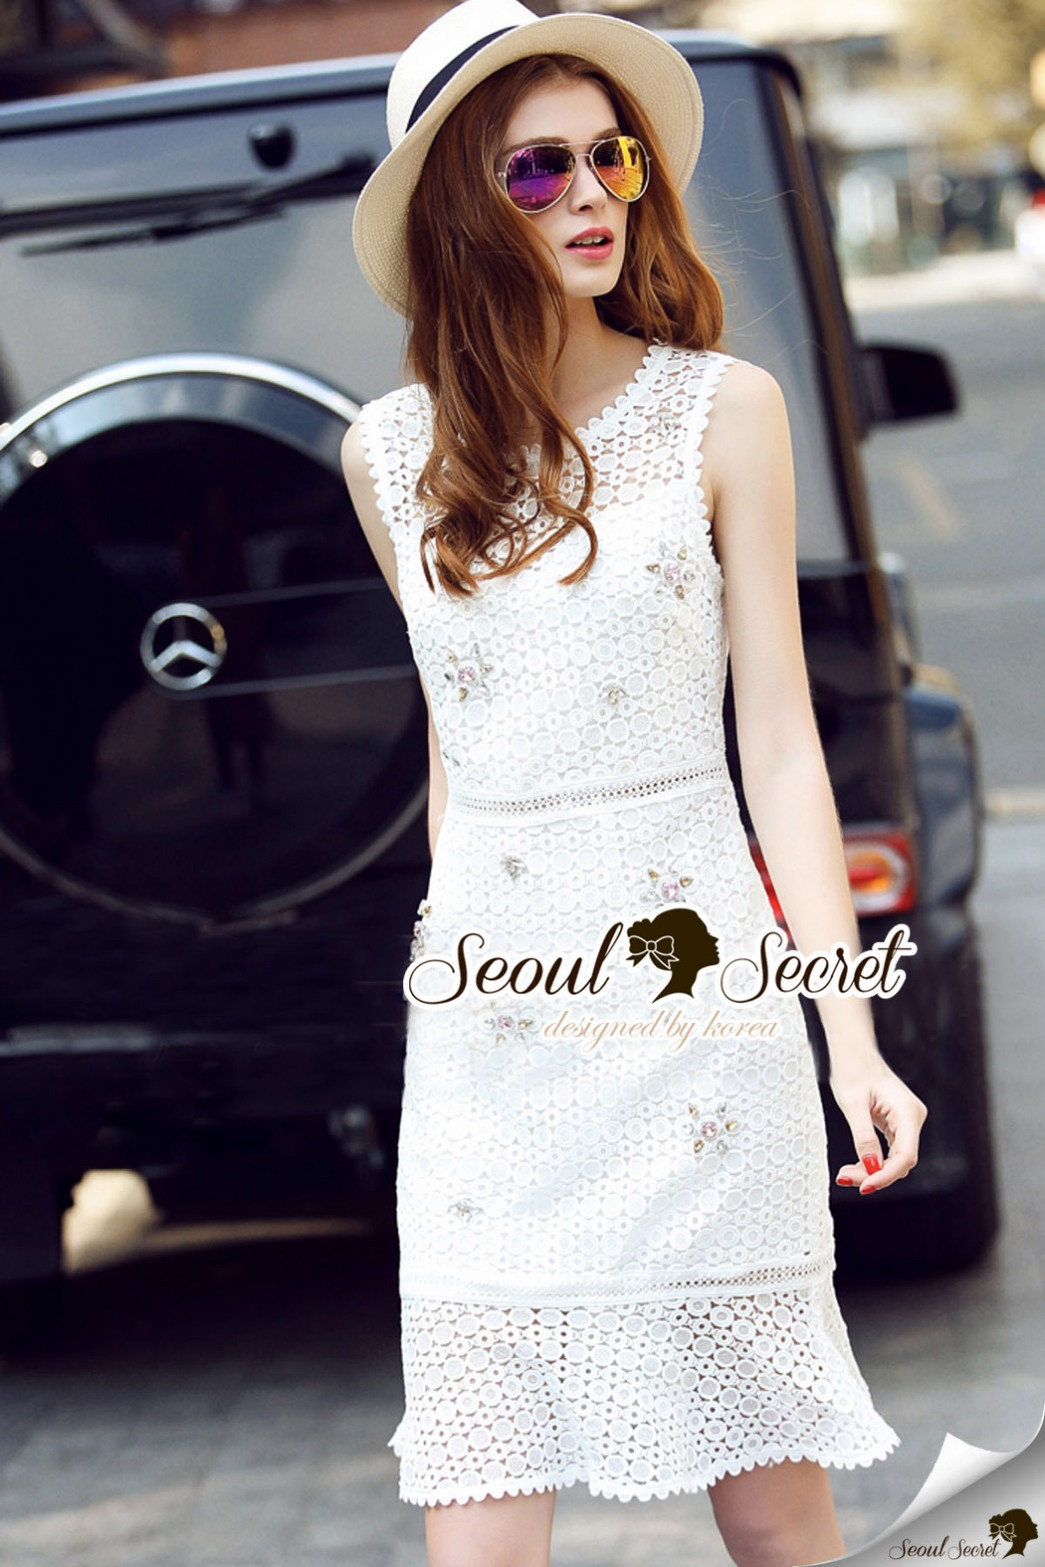 Seoul Secret Say's... Diamond Fairy Lace Dress